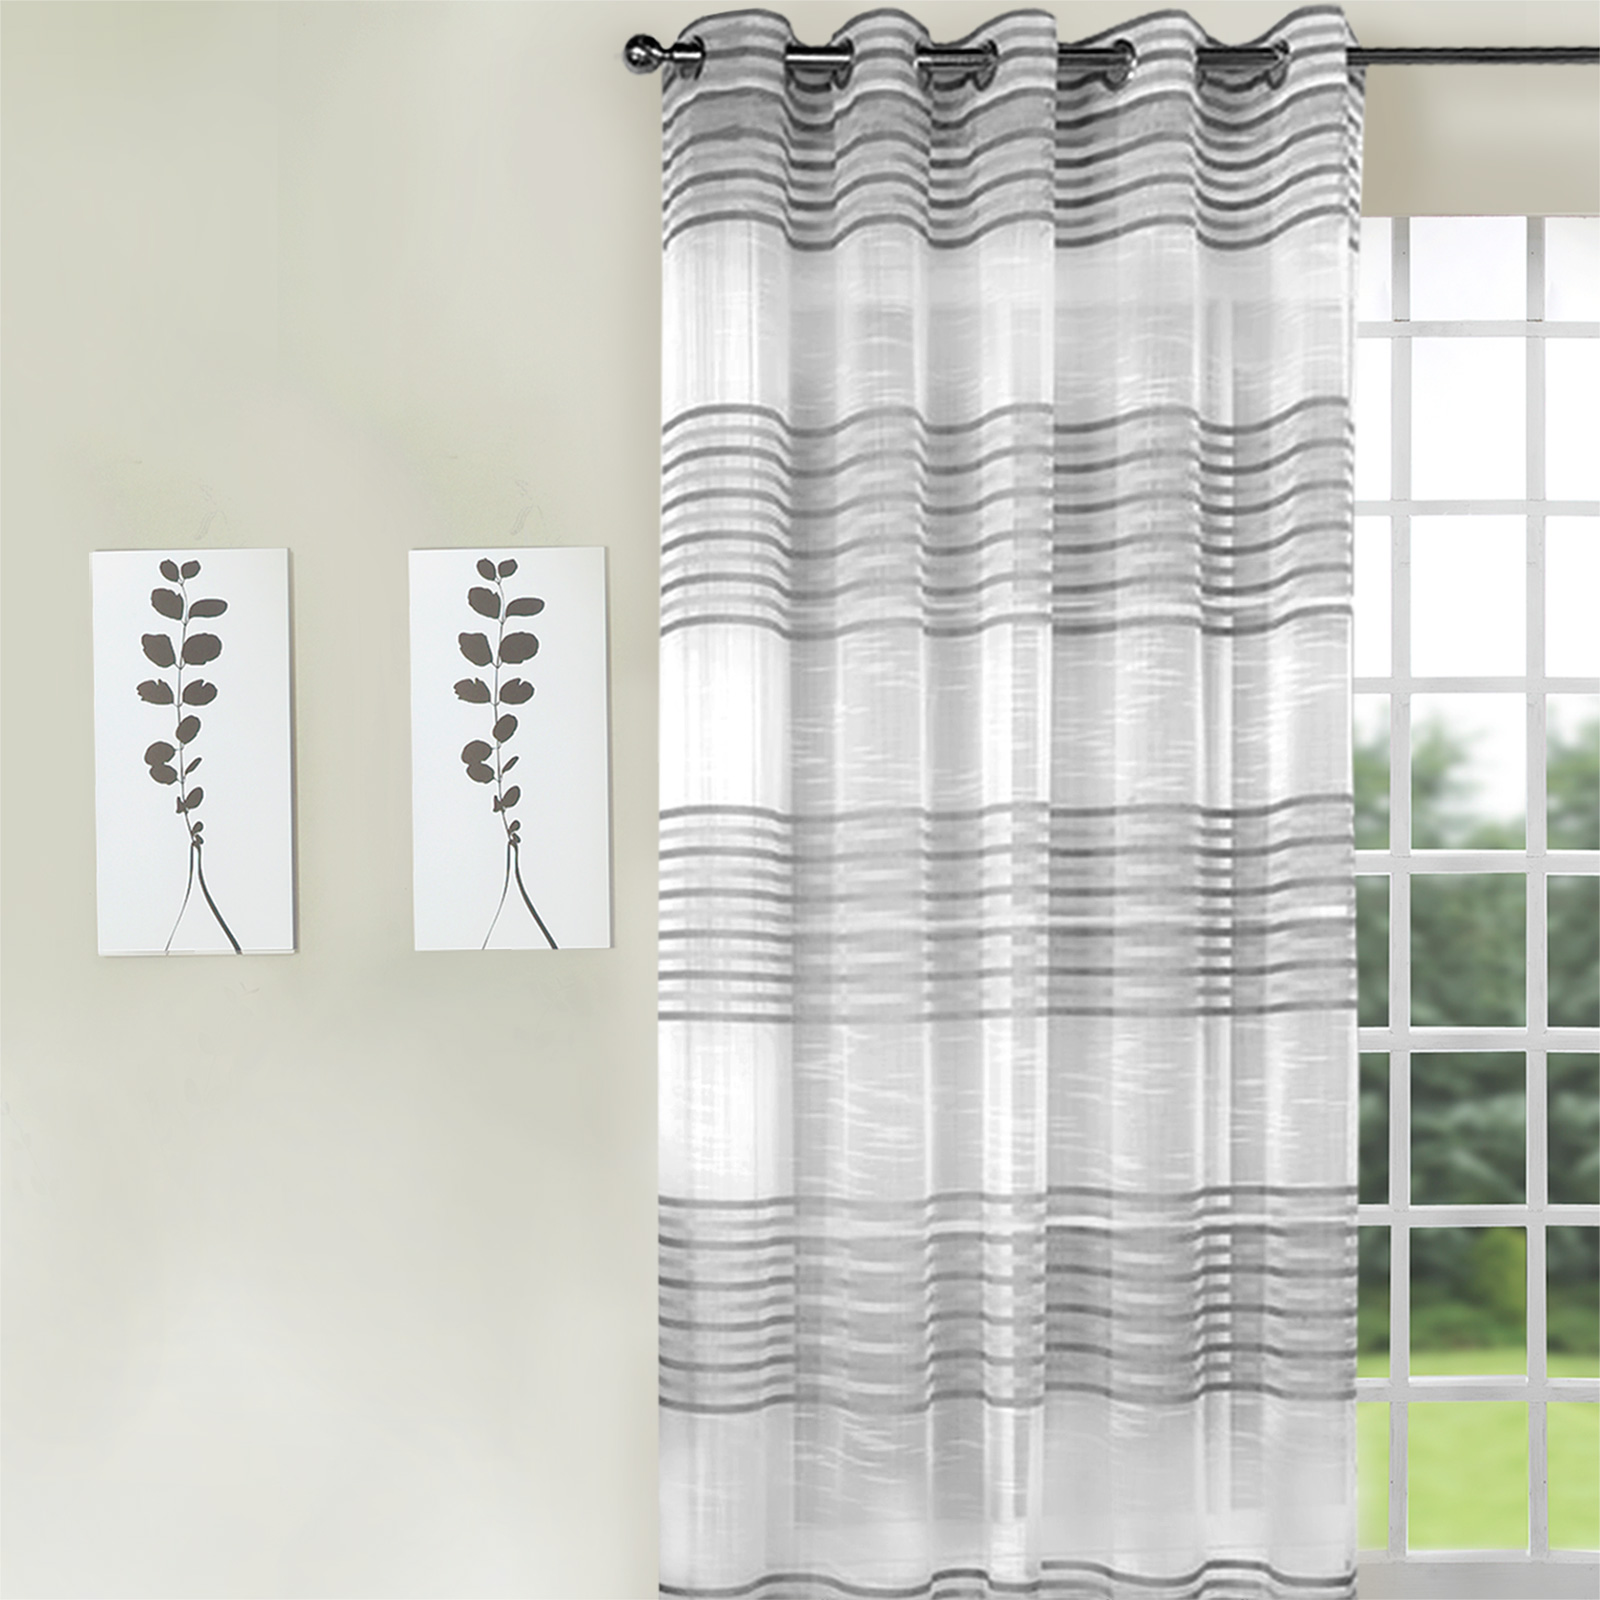 Black white striped curtains horizontal